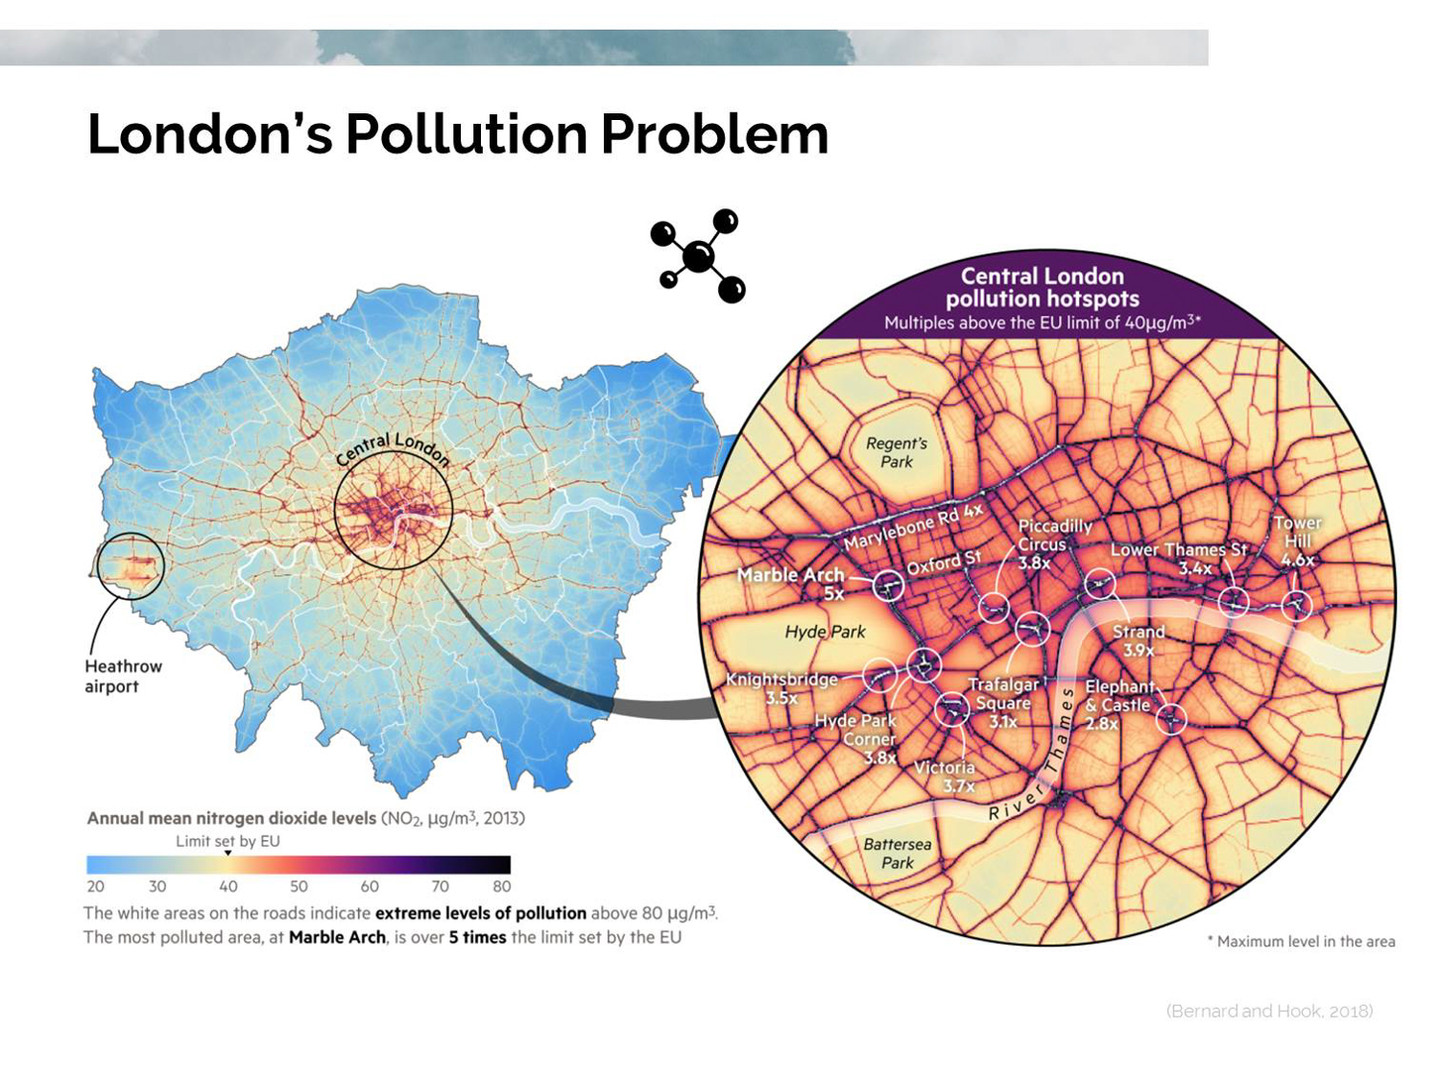 London's Air Pollution Problem